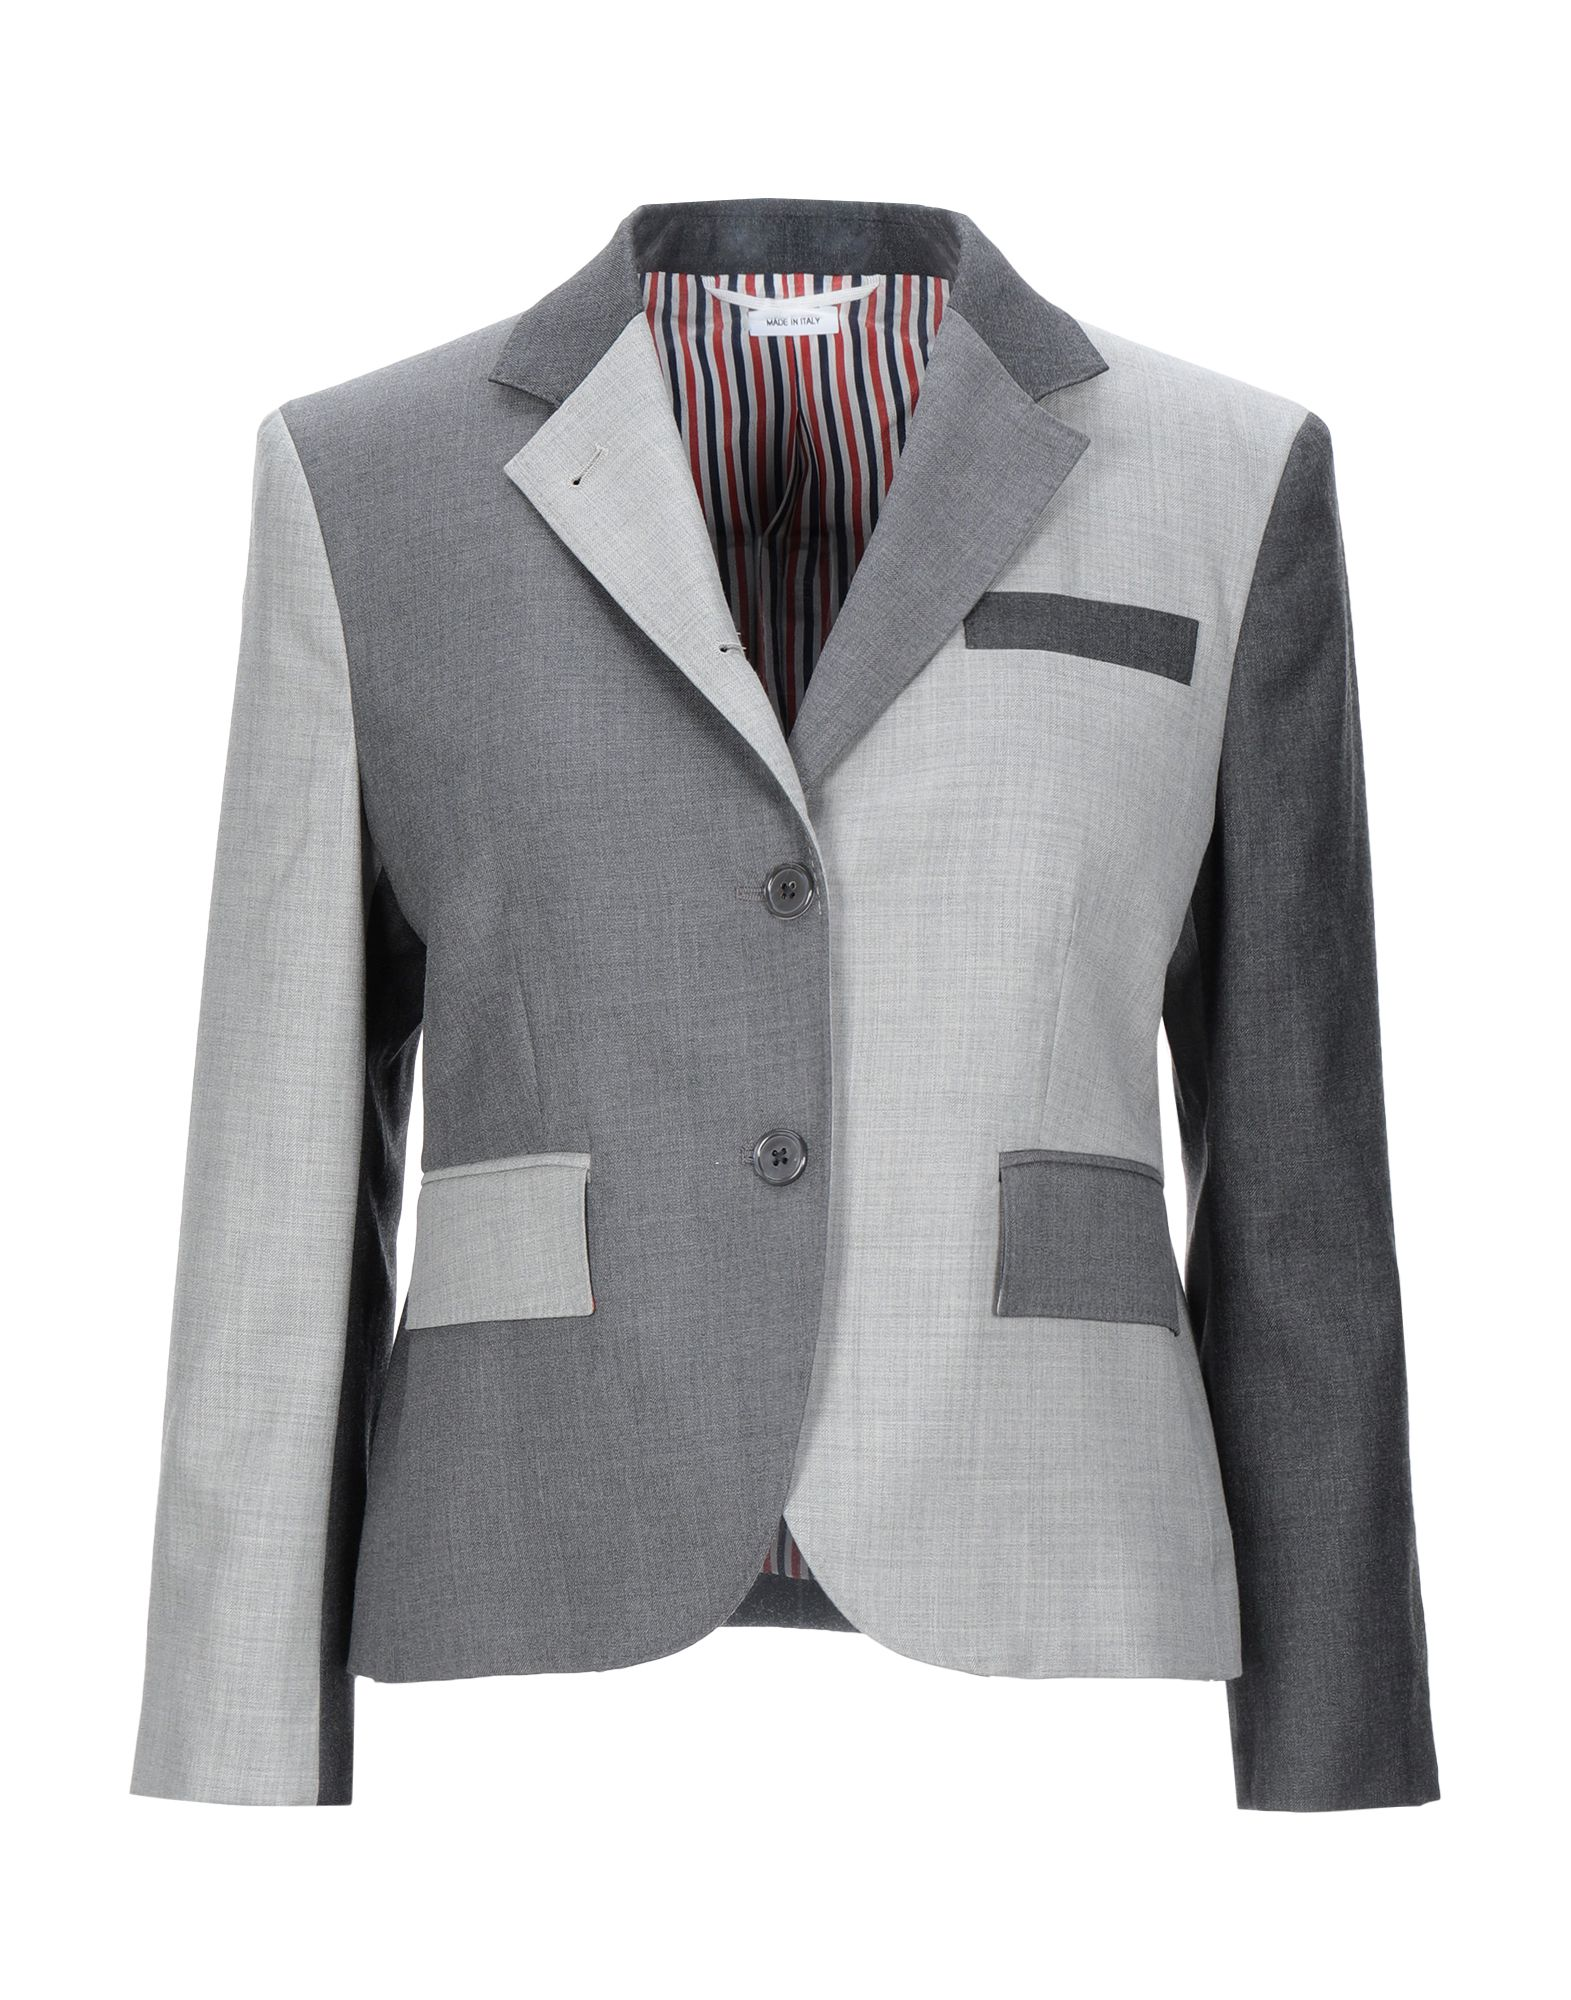 THOM BROWNE Suit jackets. flannel, no appliqués, multicolor pattern, multipockets, single chest pocket, button closing, single-breasted, lapel collar, long sleeves, dual back vents, fully lined. 100% Wool